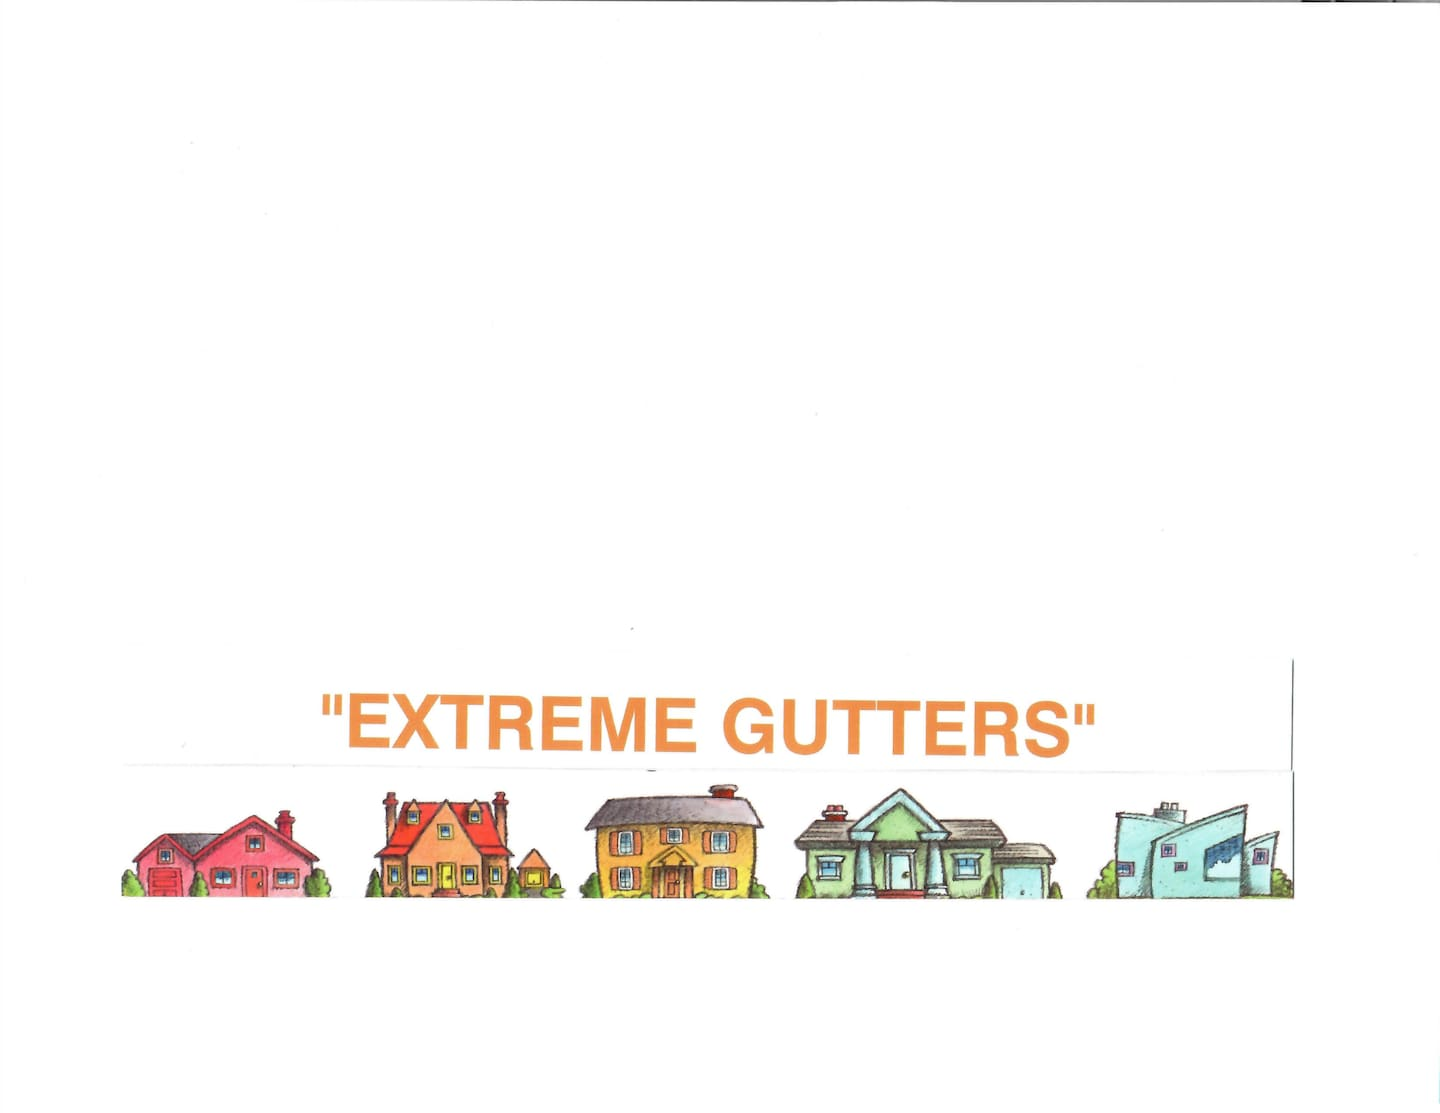 Extreme Gutters